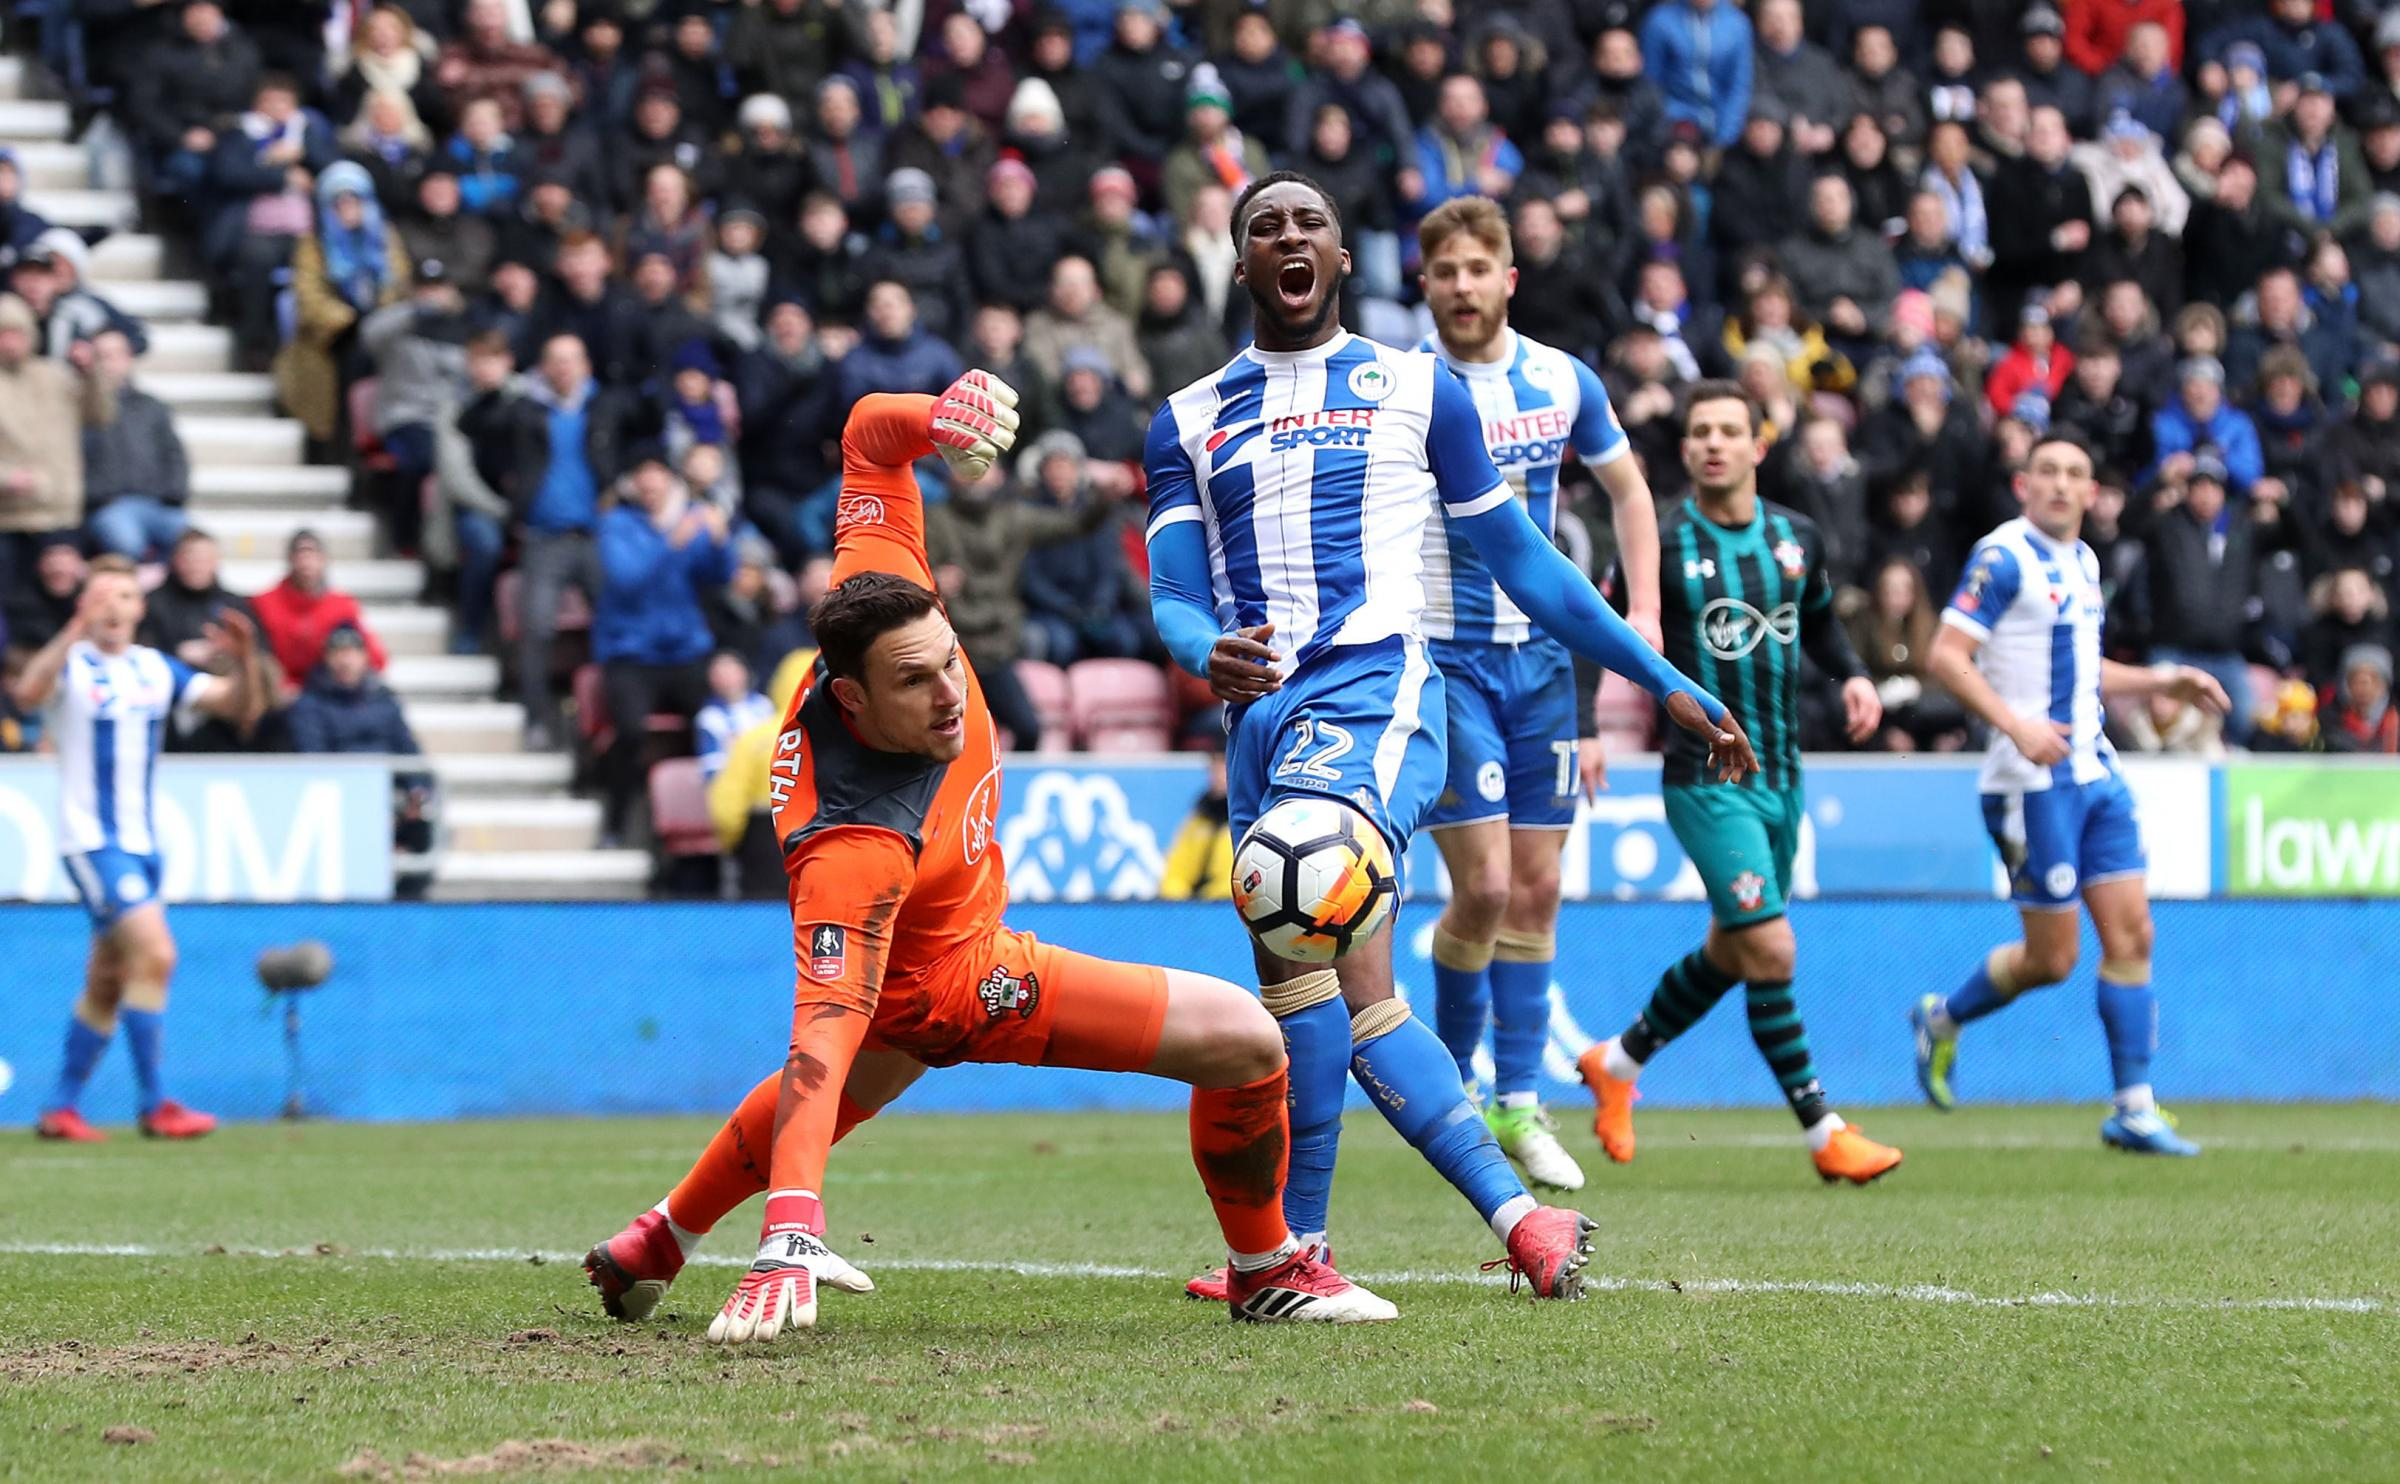 GOOD MOVE: Chey Dunkley is closing in on a second promotion in three seasons, but Wigan Athletic also reached the FA Cup quarter-final against Southampton   Picture: Martin Rickett/PA Wire